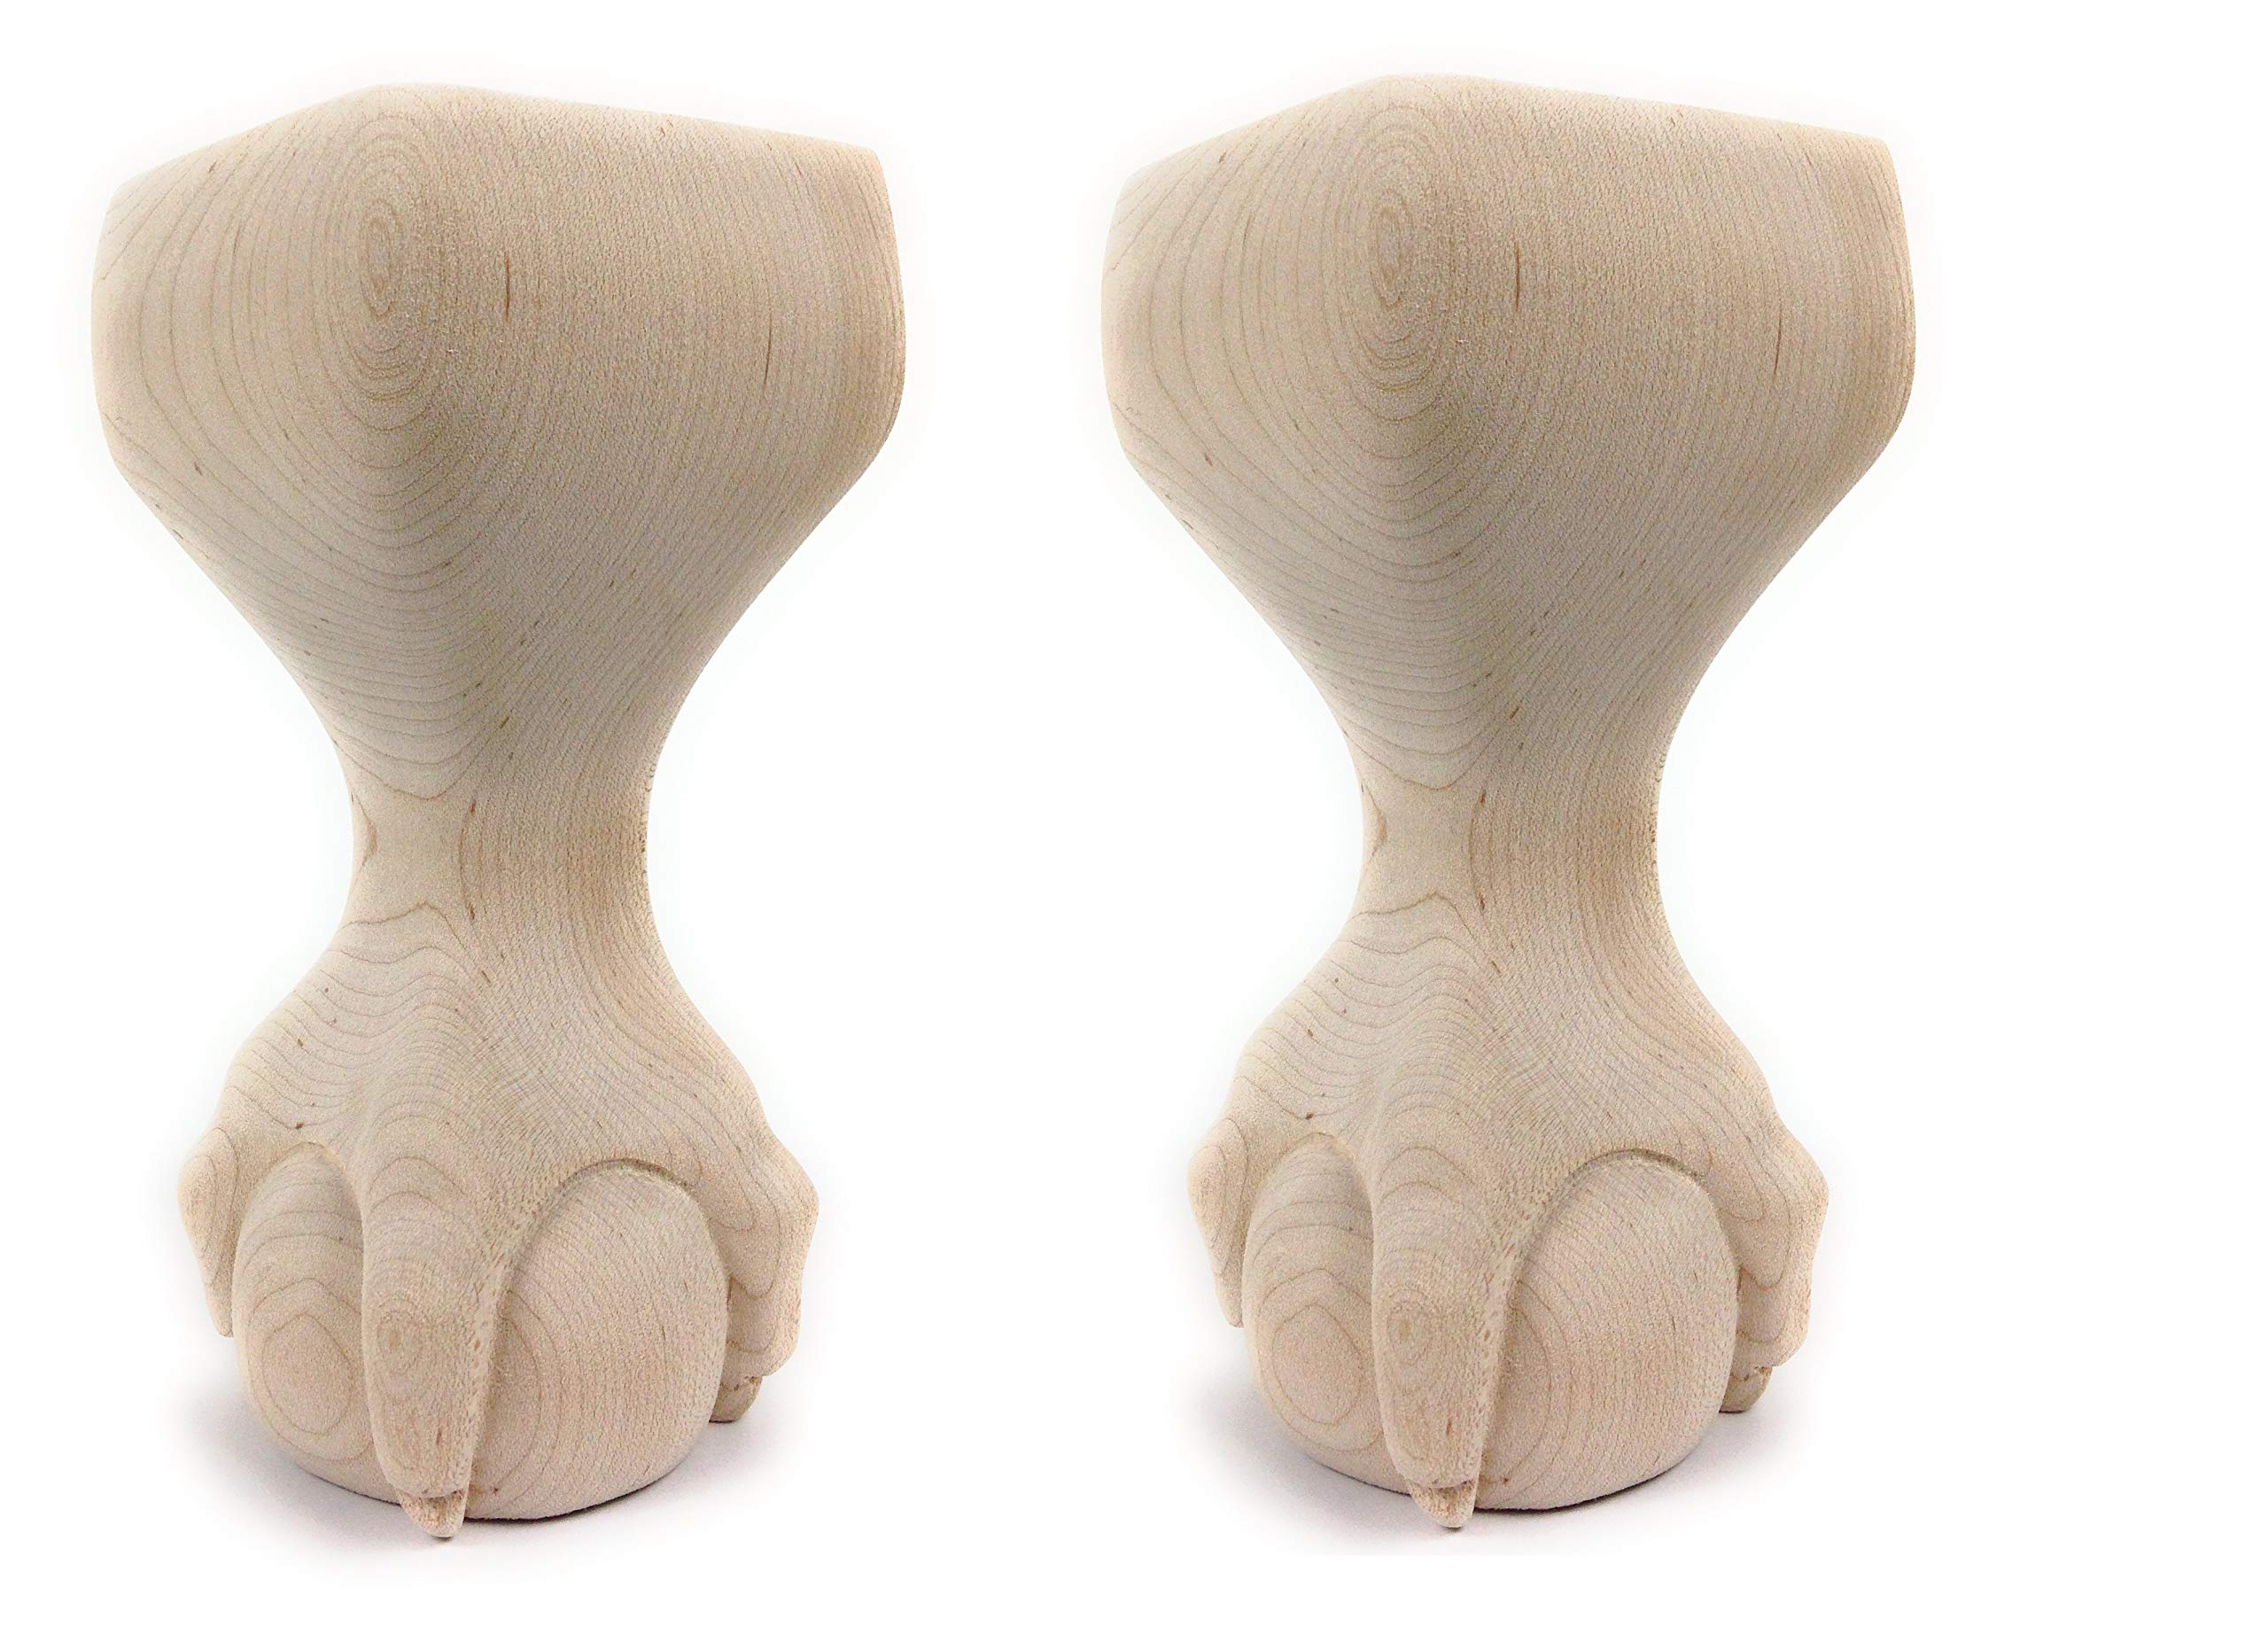 Highland Manor Wood Products Set of 2 Ball and Claw Foot - 6'' Tall x 2 3/4'' Wide (Maple)